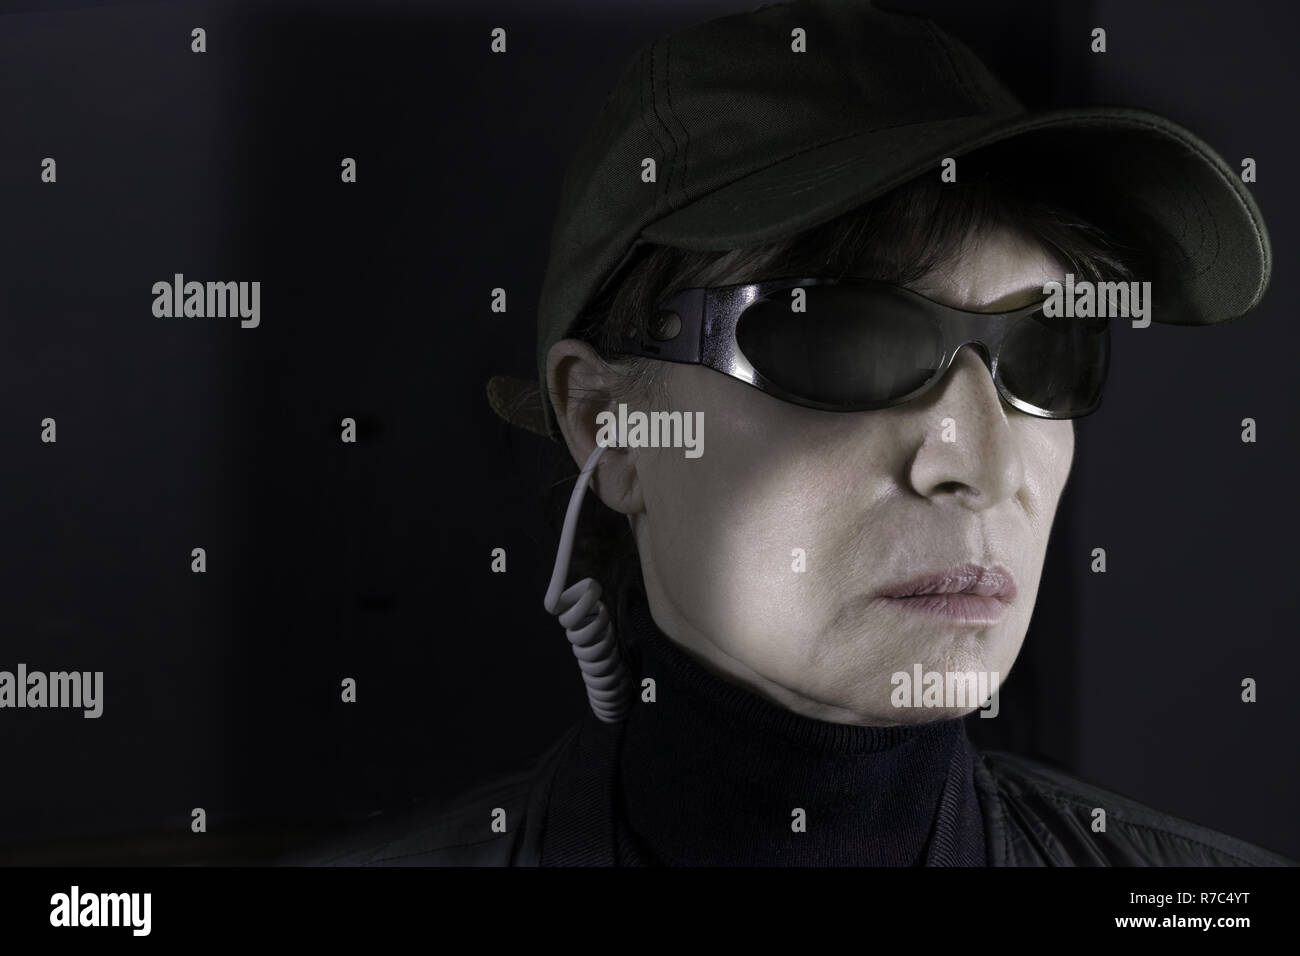 The very severe face of a female cop from secret services. - Stock Image